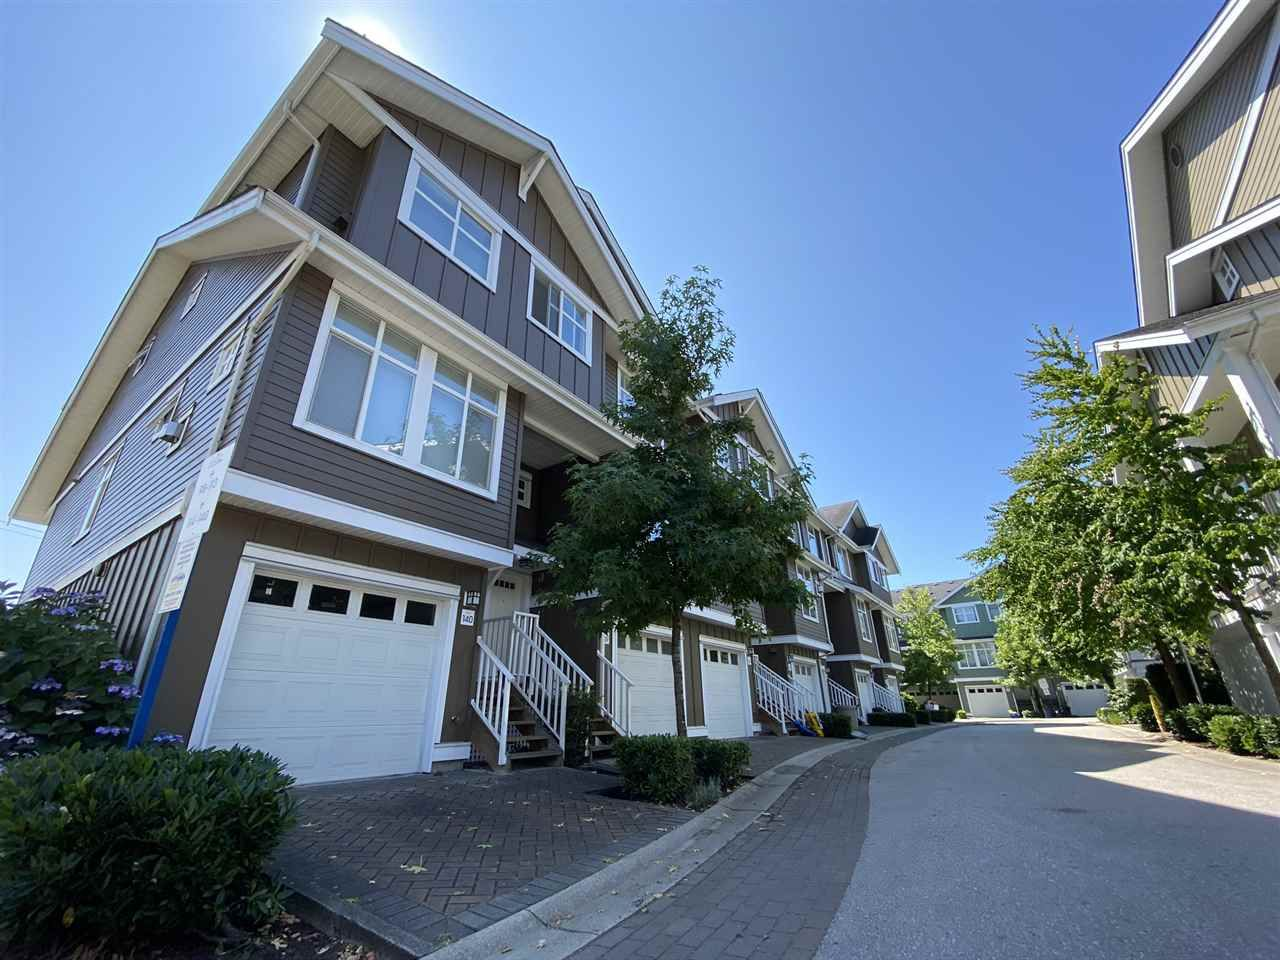 """Main Photo: 139 935 EWEN Avenue in New Westminster: Queensborough Townhouse for sale in """"Coopers Landing"""" : MLS®# R2504151"""